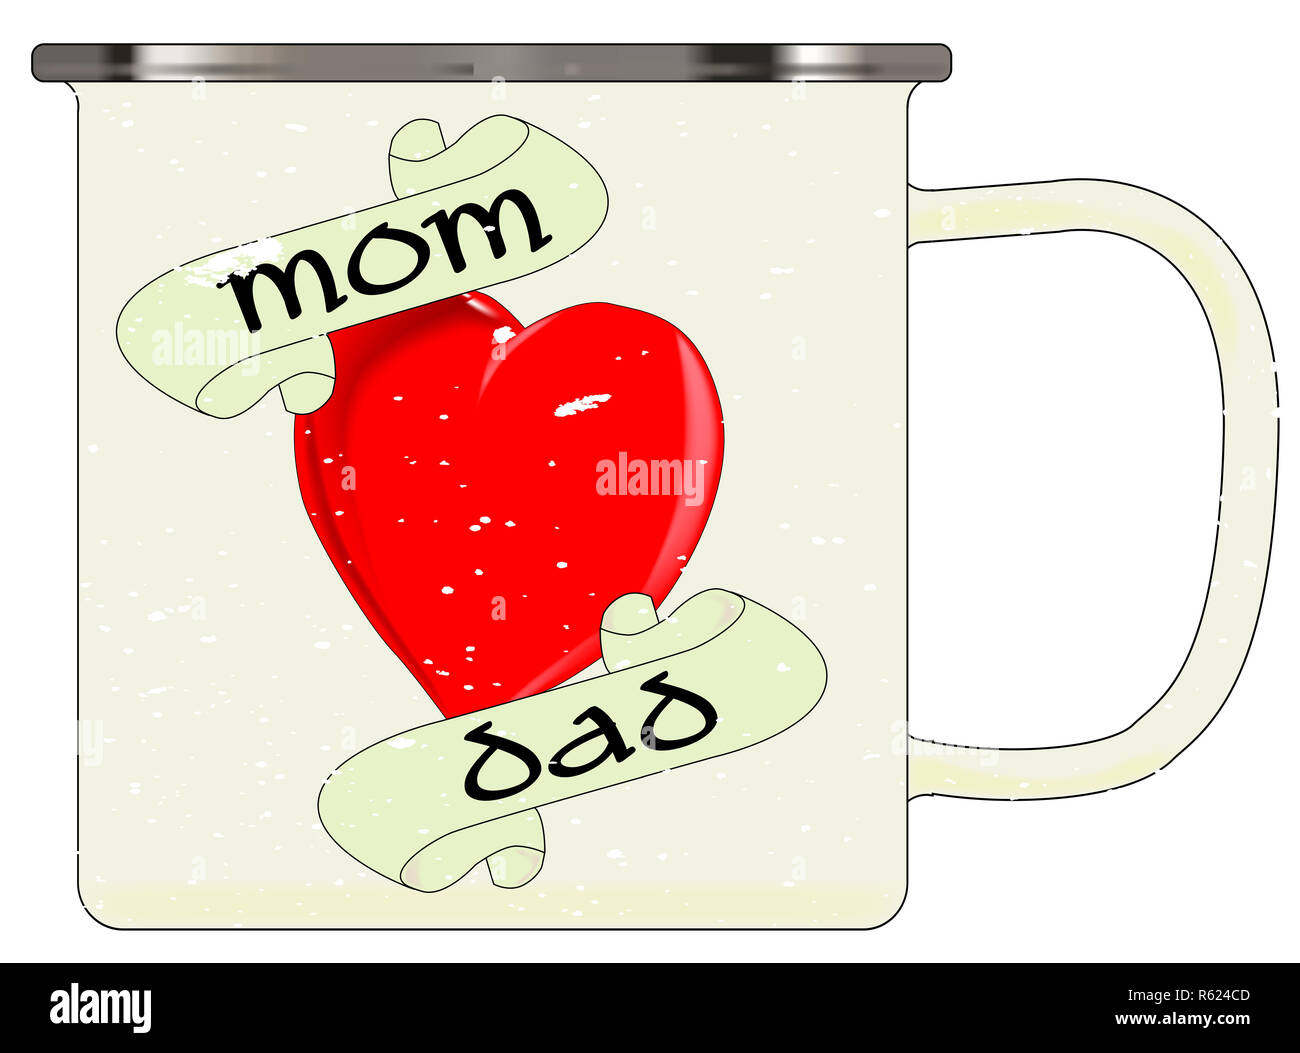 Mottle Stock Photos Images Alamy Mom N Bab Long Tee White Plain A Typical Enamel Tin Cup With Fx And Dad Red Heart